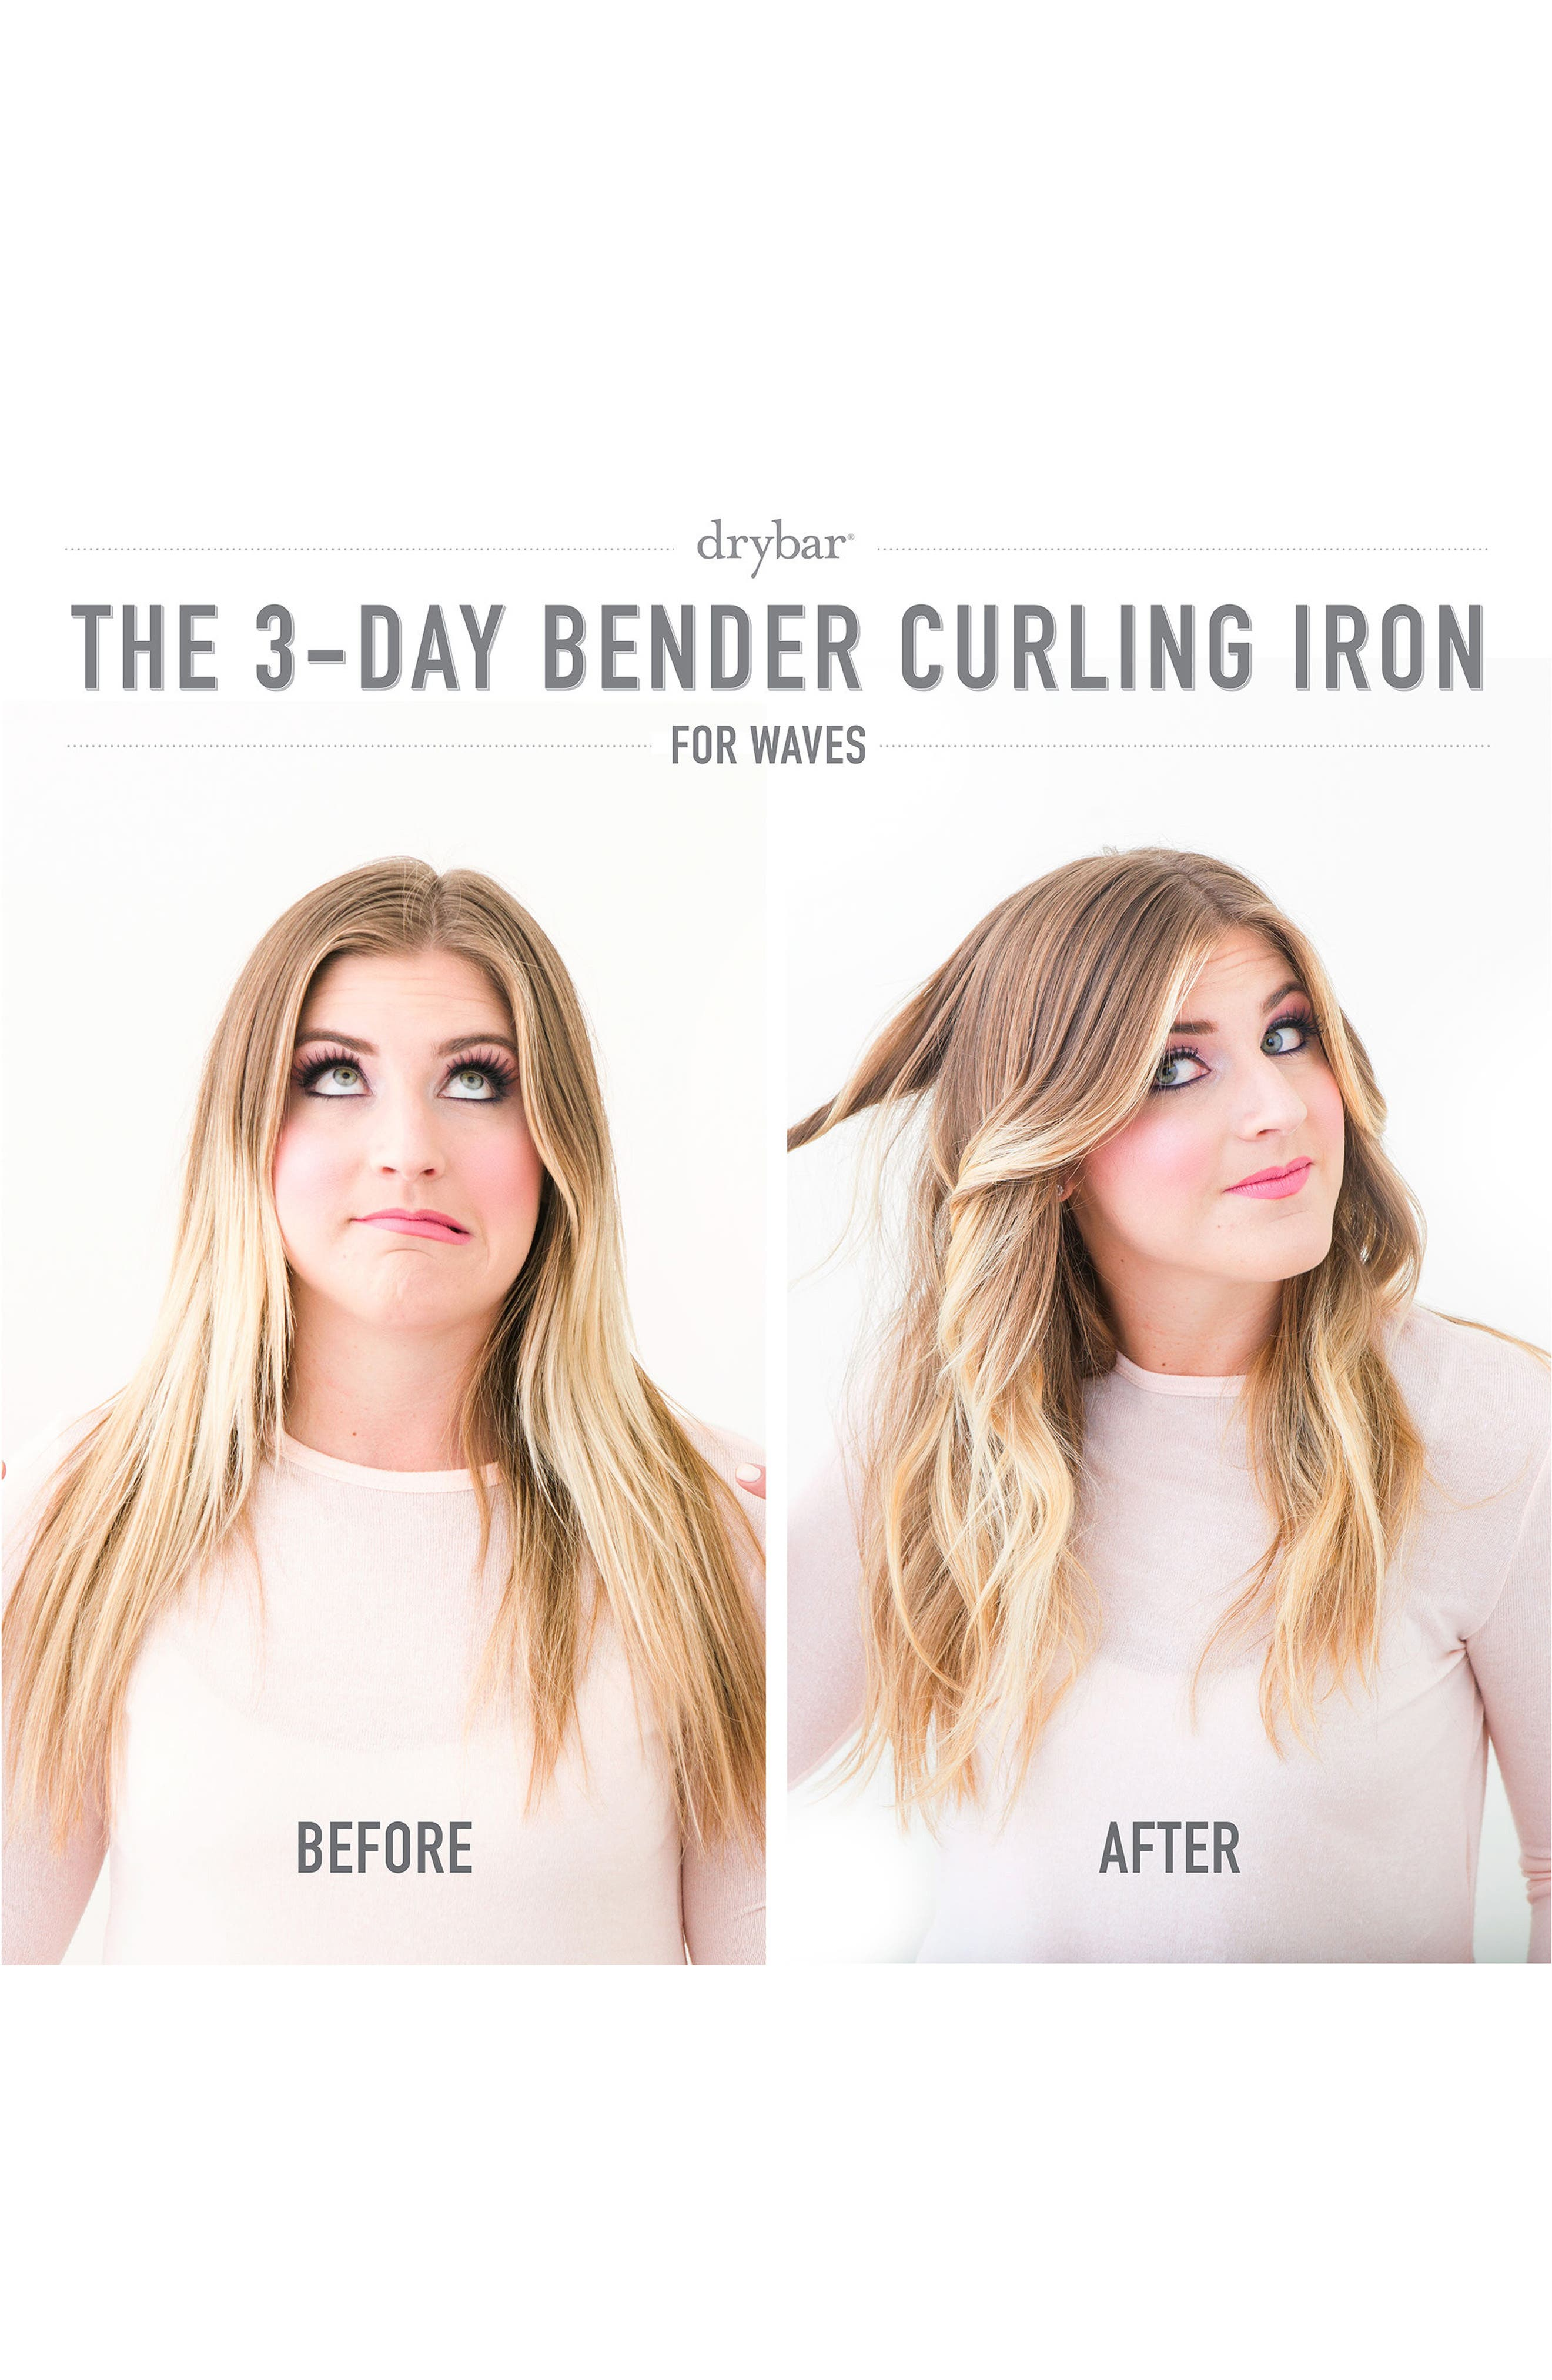 '3-Day Bender' Digital Curling Iron,                             Alternate thumbnail 3, color,                             000